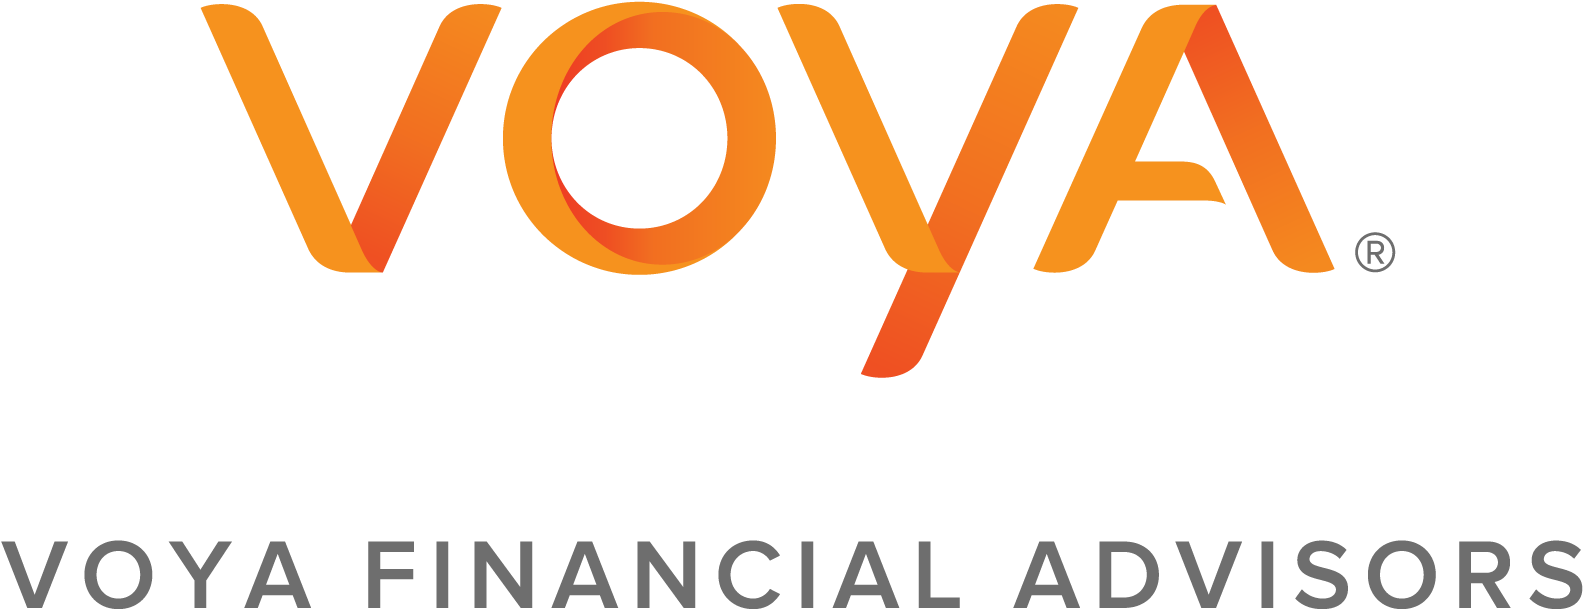 Voya Financial Advisors | Jackson, Tennessee